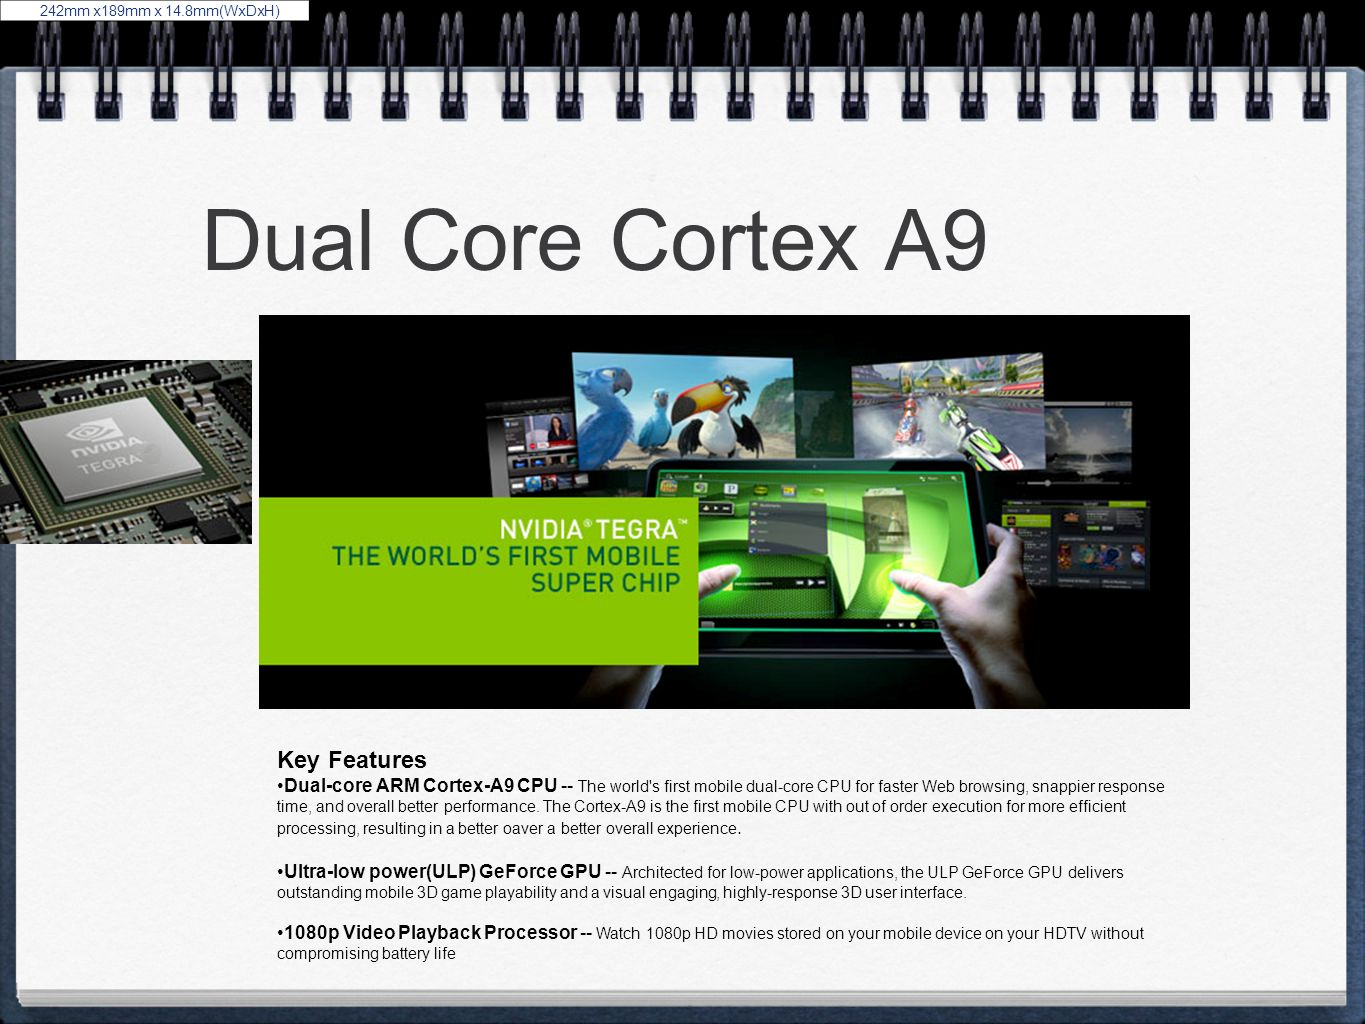 Dual Core Cortex A9 242mm x189mm x 14.8mm(WxDxH) Key Features Dual-core ARM Cortex-A9 CPU -- The world's first mobile dual-core CPU for faster Web bro